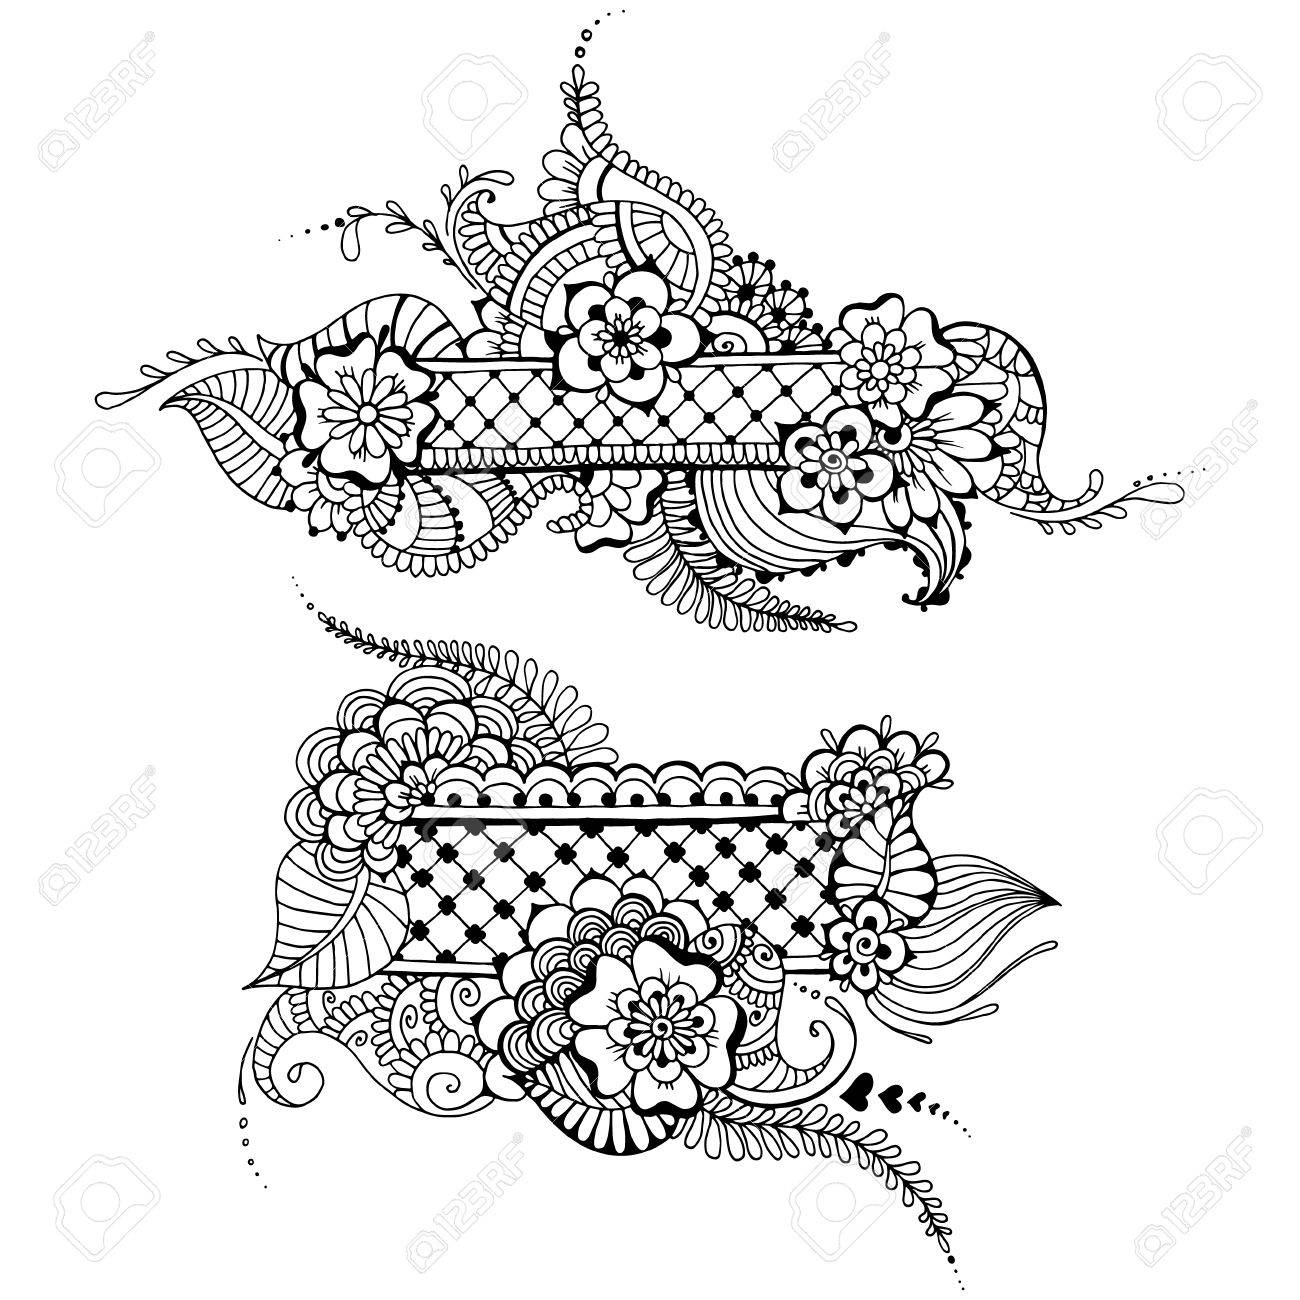 templates for tattoo design with mehndi elements royalty free